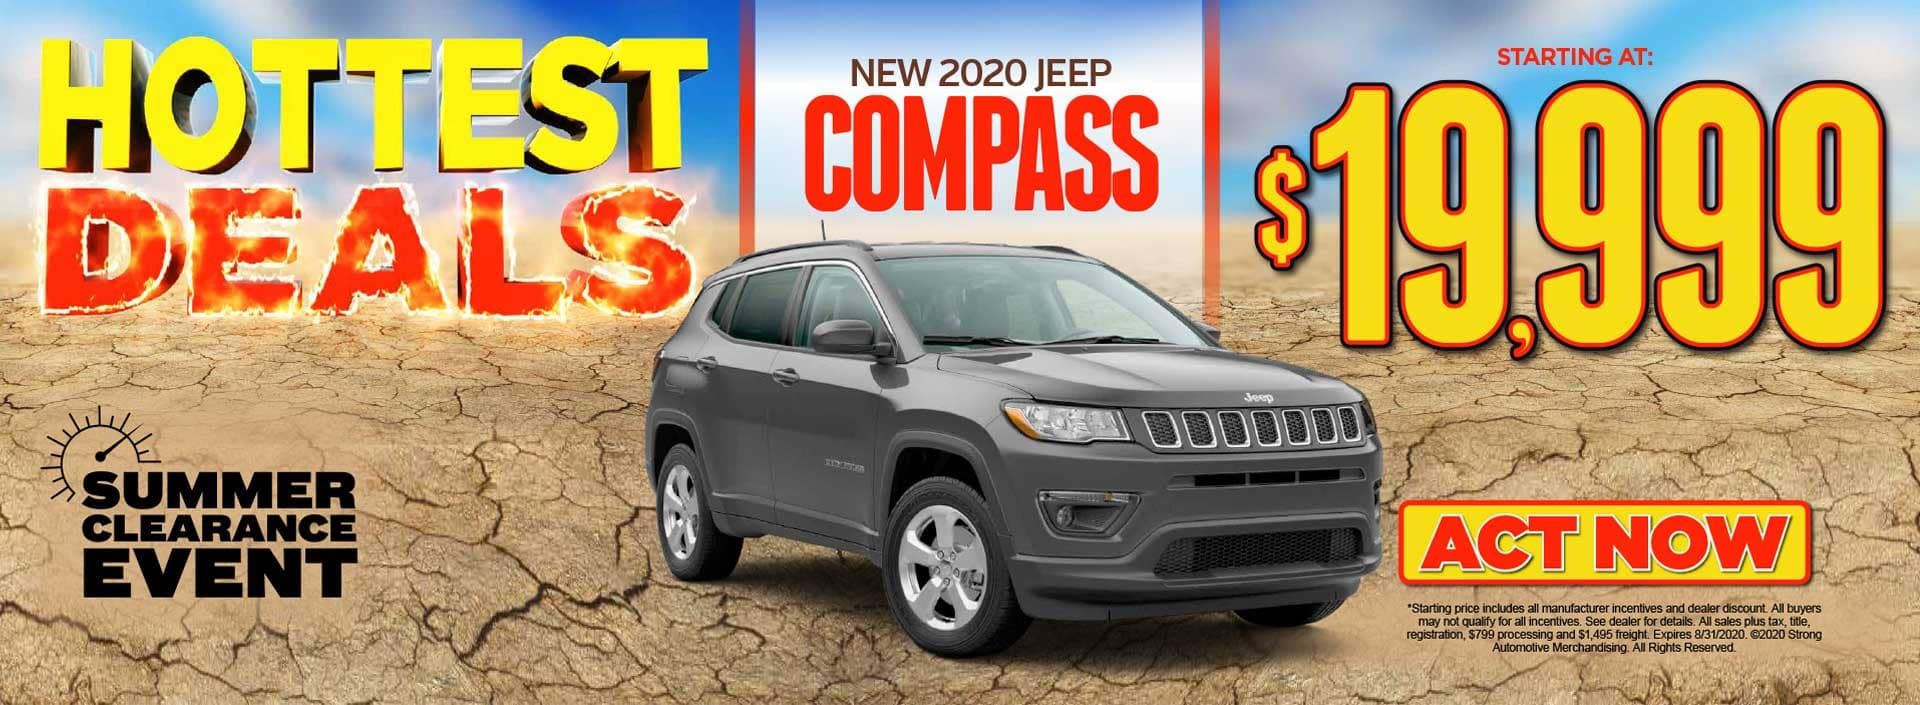 New 2020 Jeep Compass starting at $19,999 ACT NOW